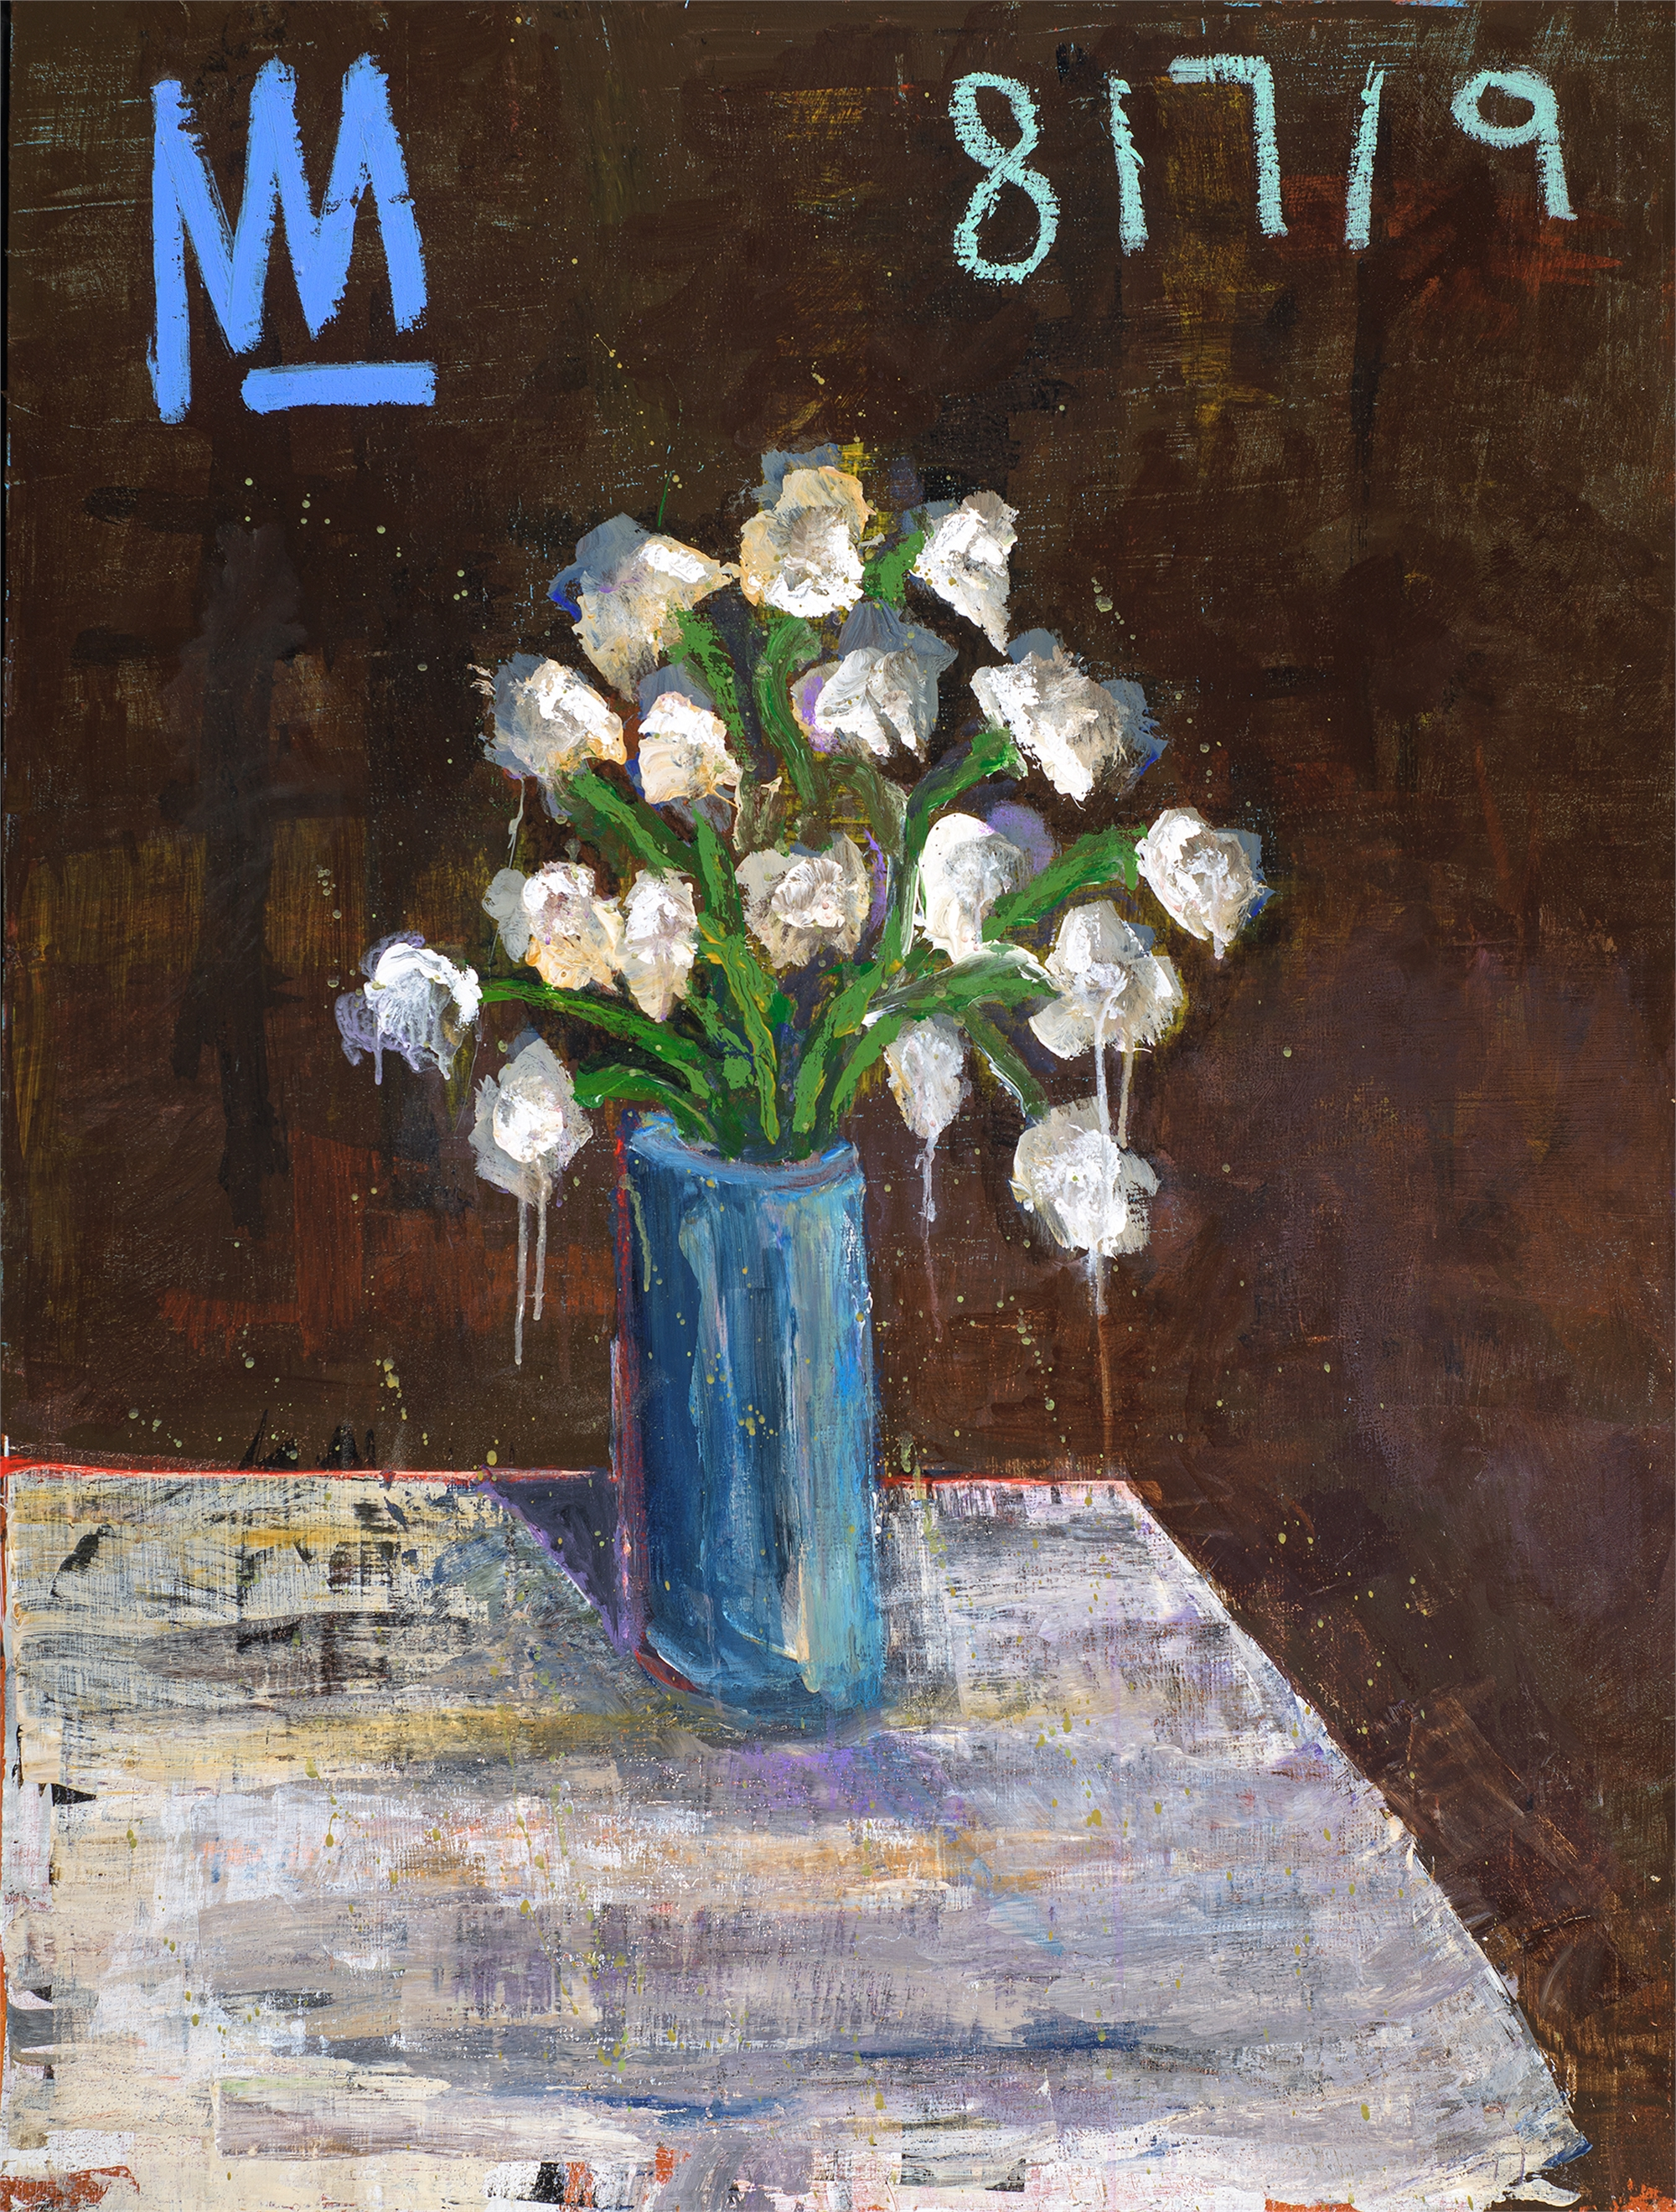 Floral Still Life with Blue Vase by Michael Snodgrass